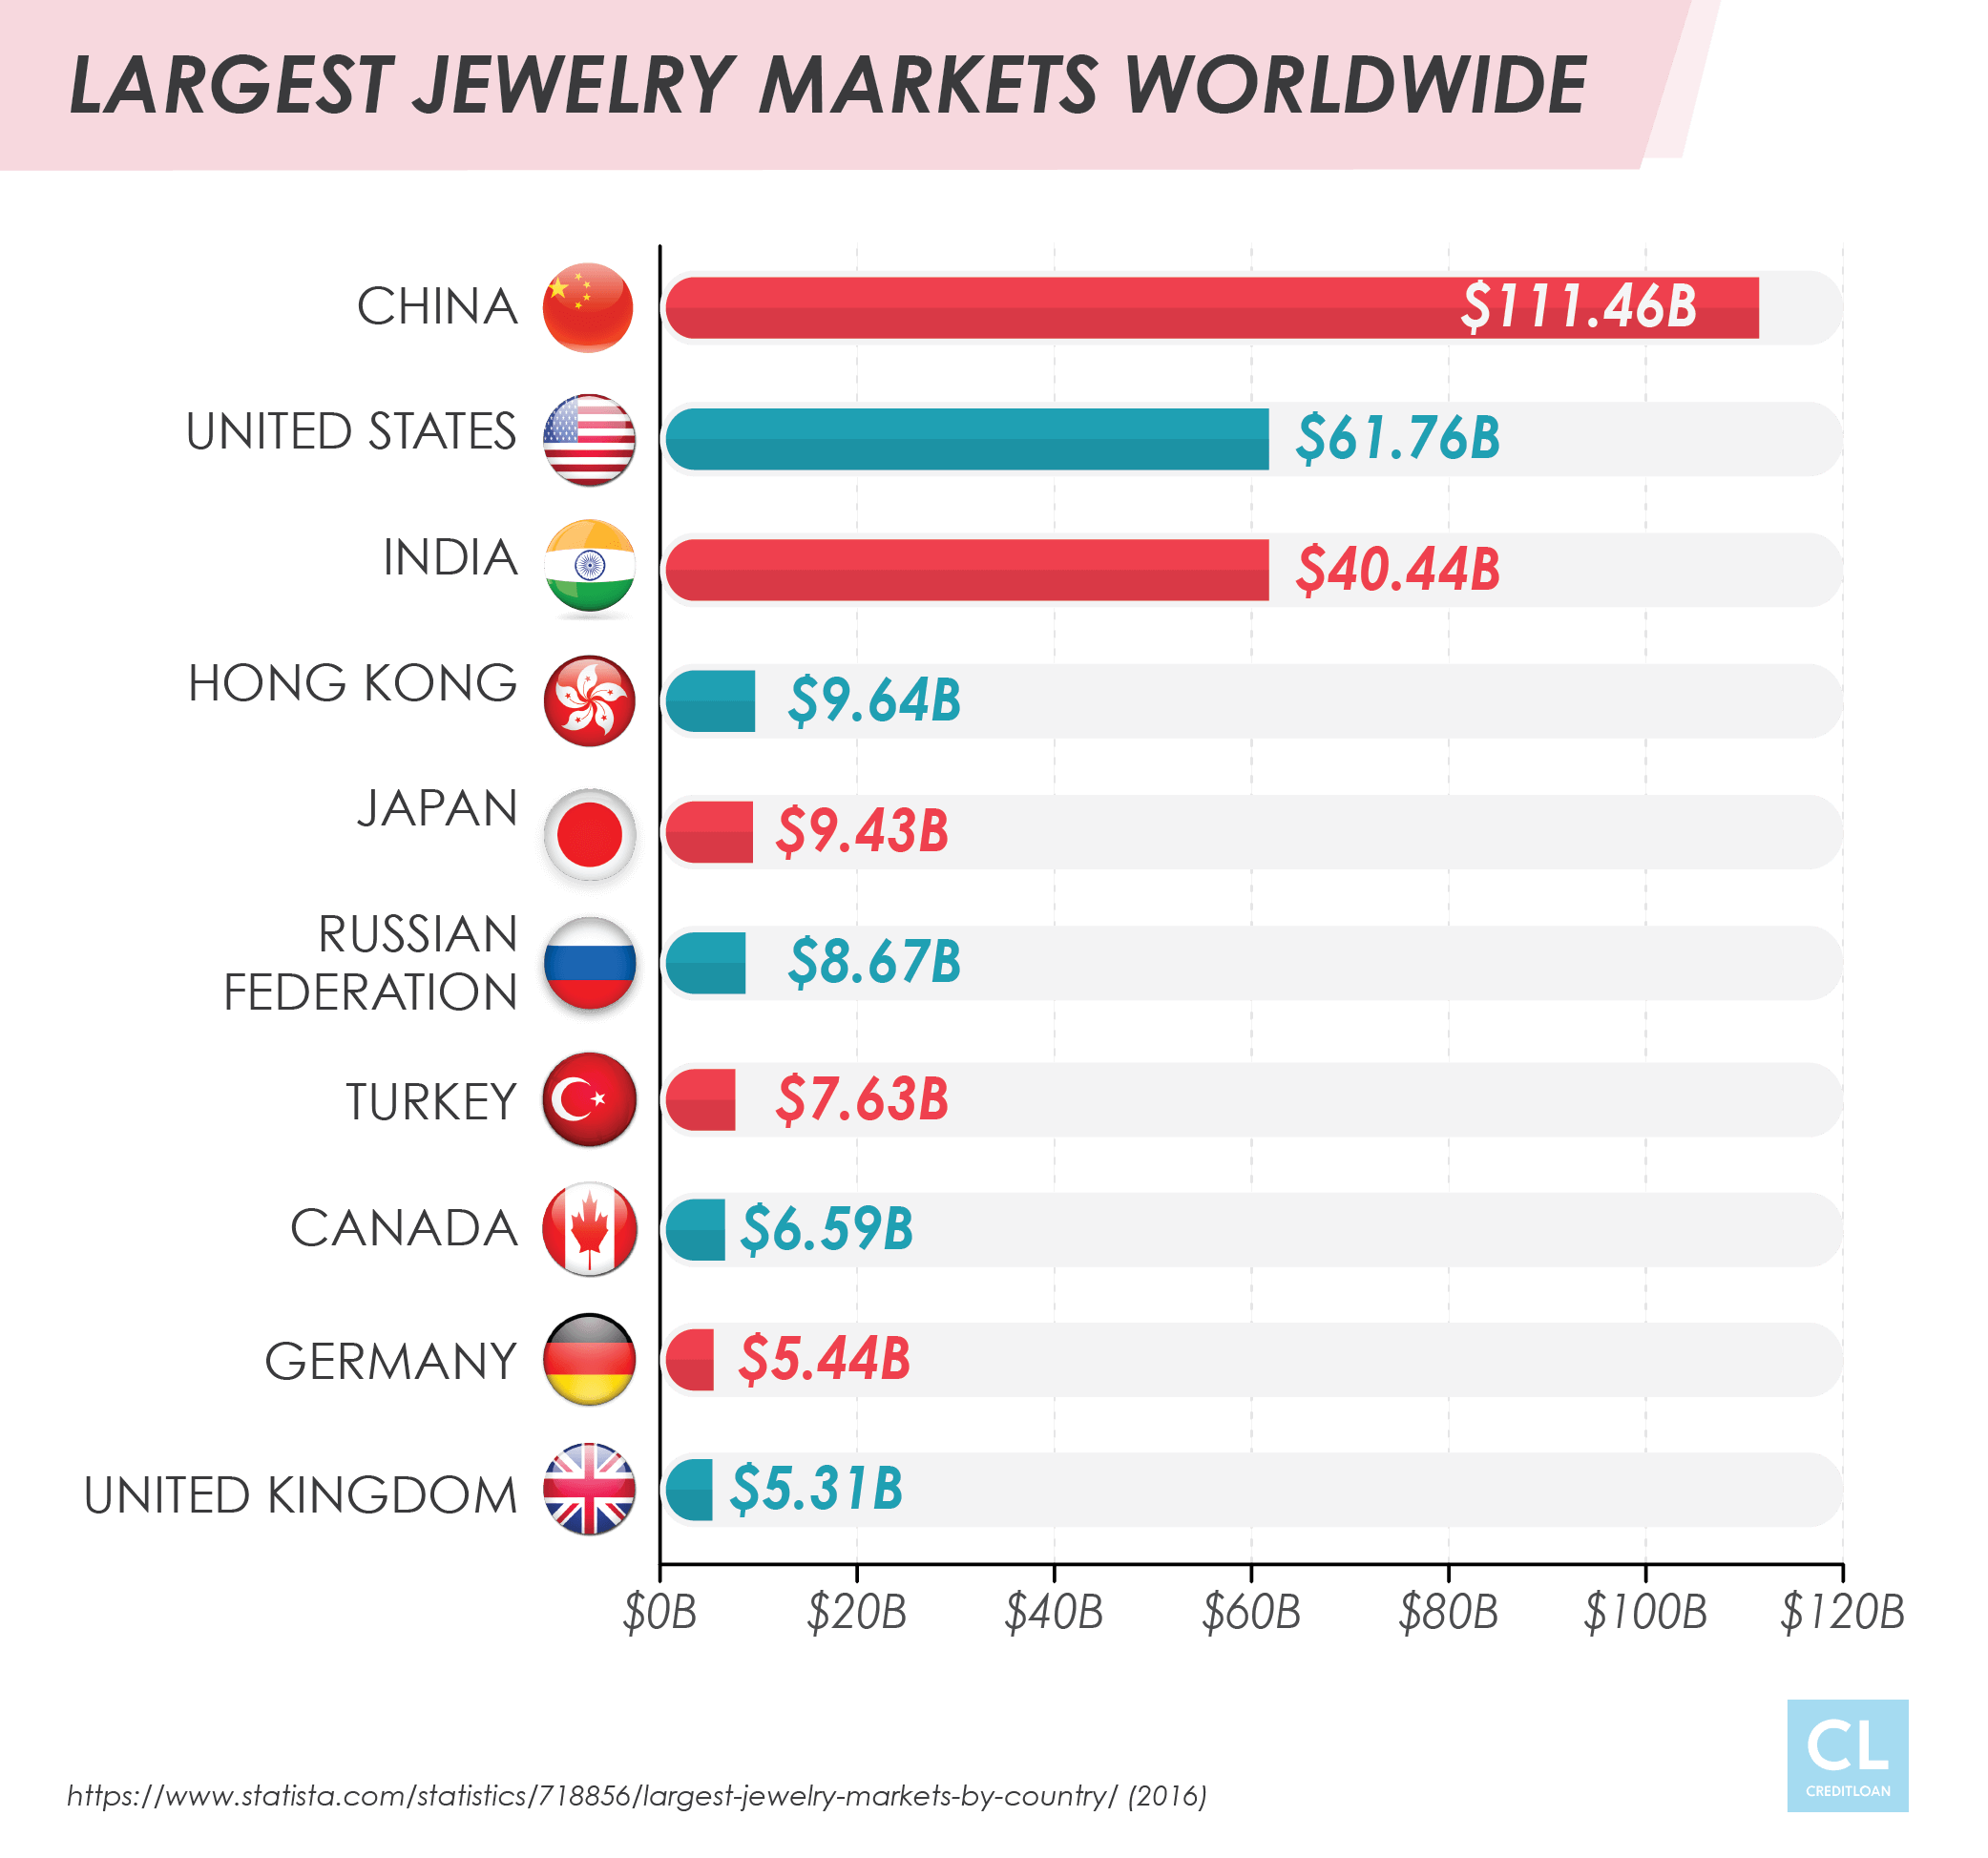 Largest Jewelry Markets Worldwide